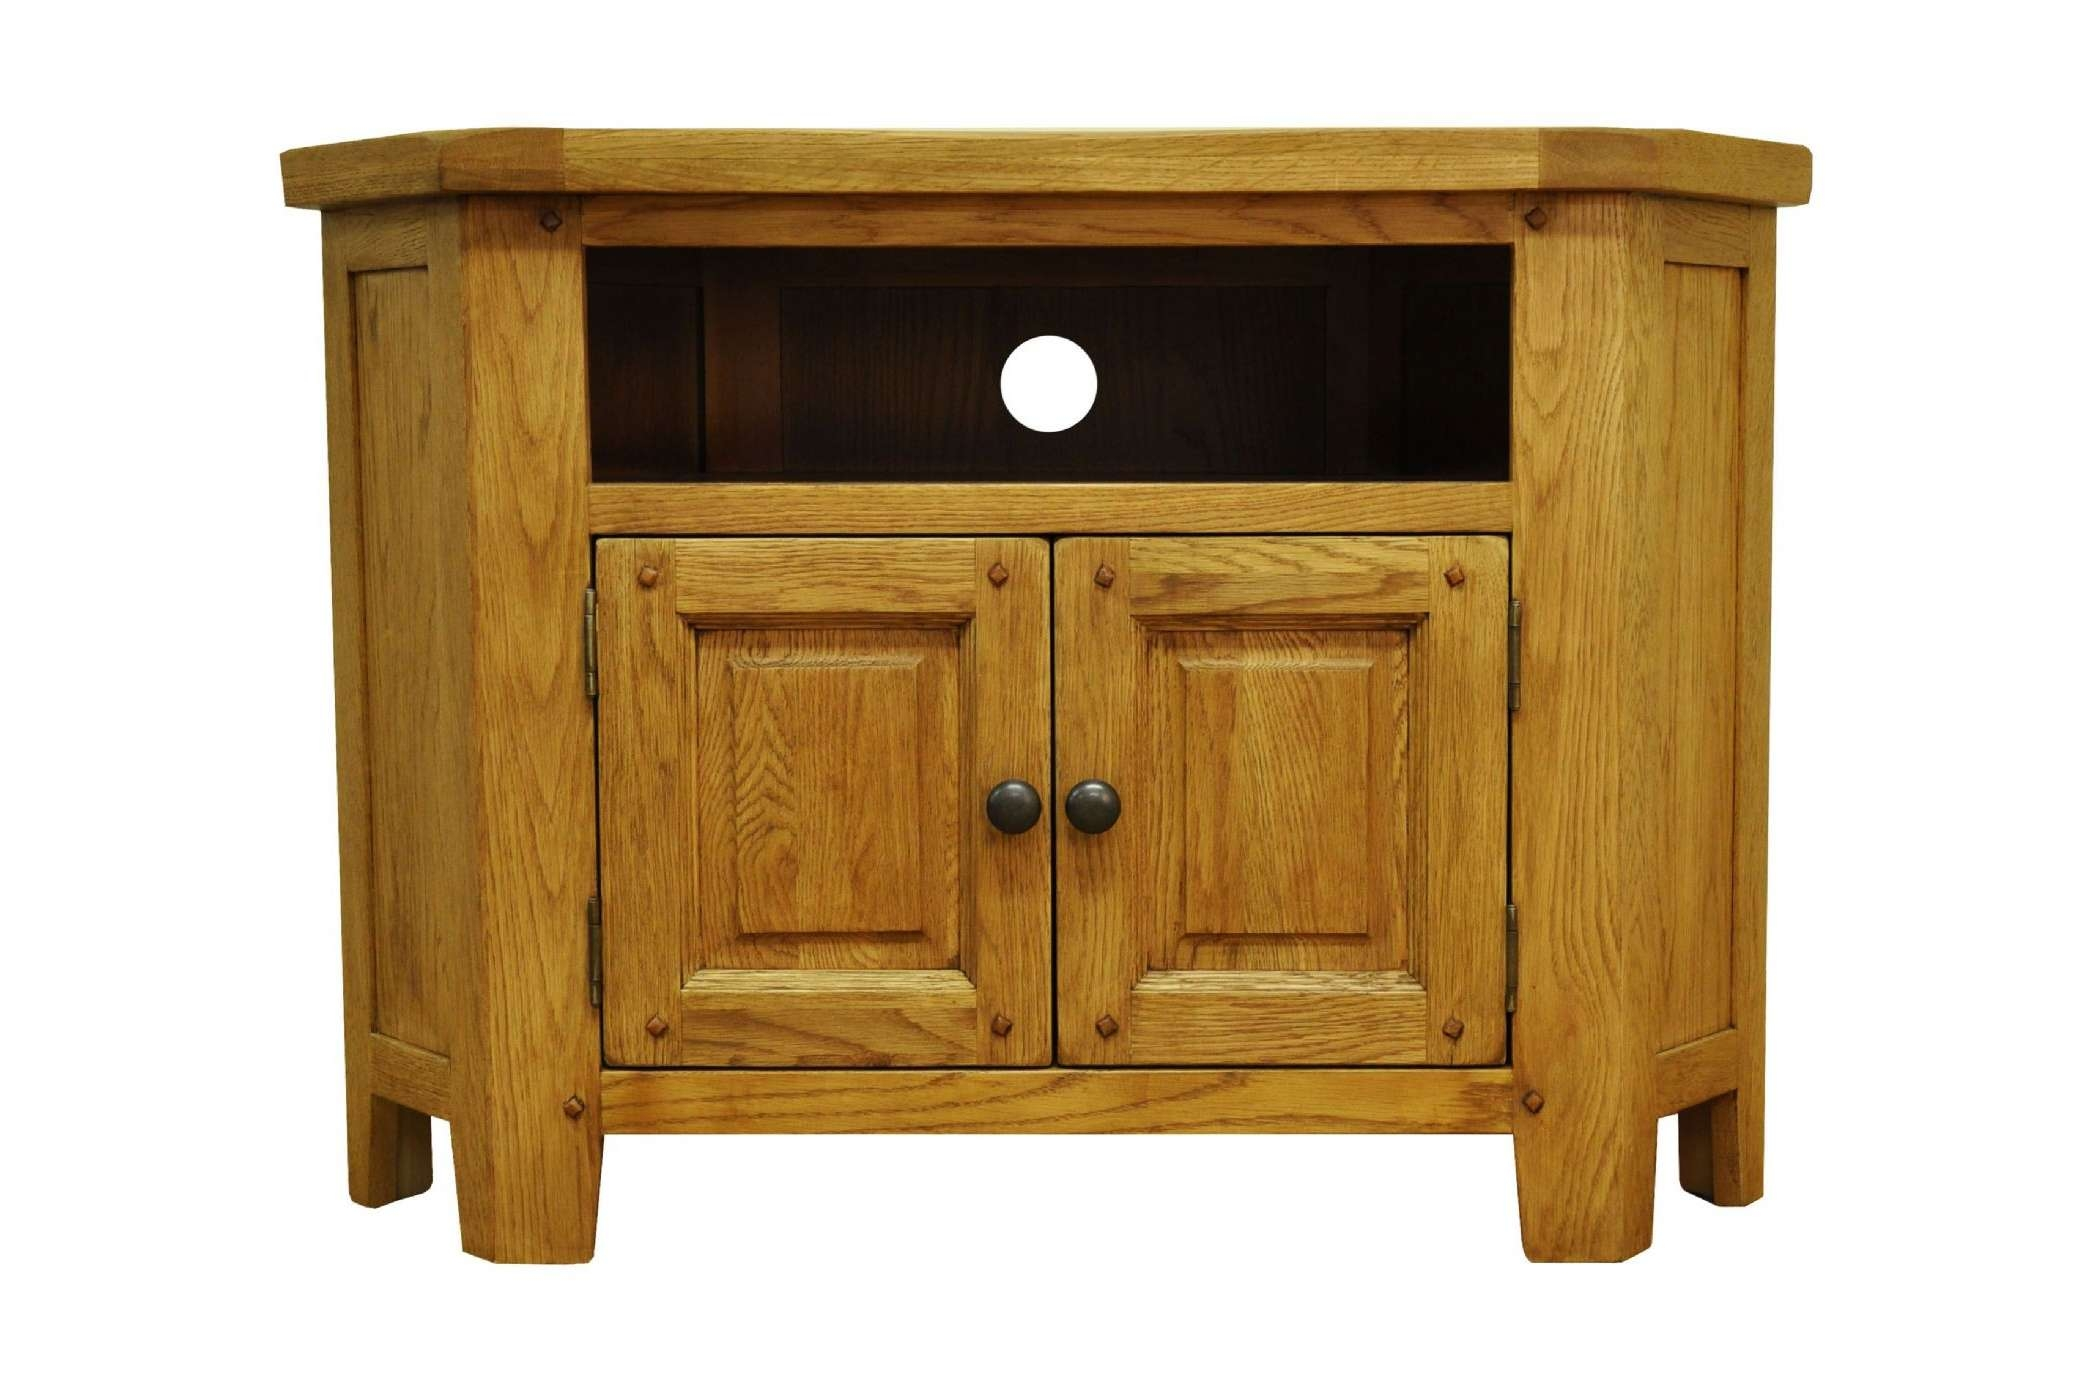 Stratford Rustic Oak Living Corner Tv Unit Cabinet Strat Ctv With Regard To Rustic Corner Tv Stands (View 17 of 20)